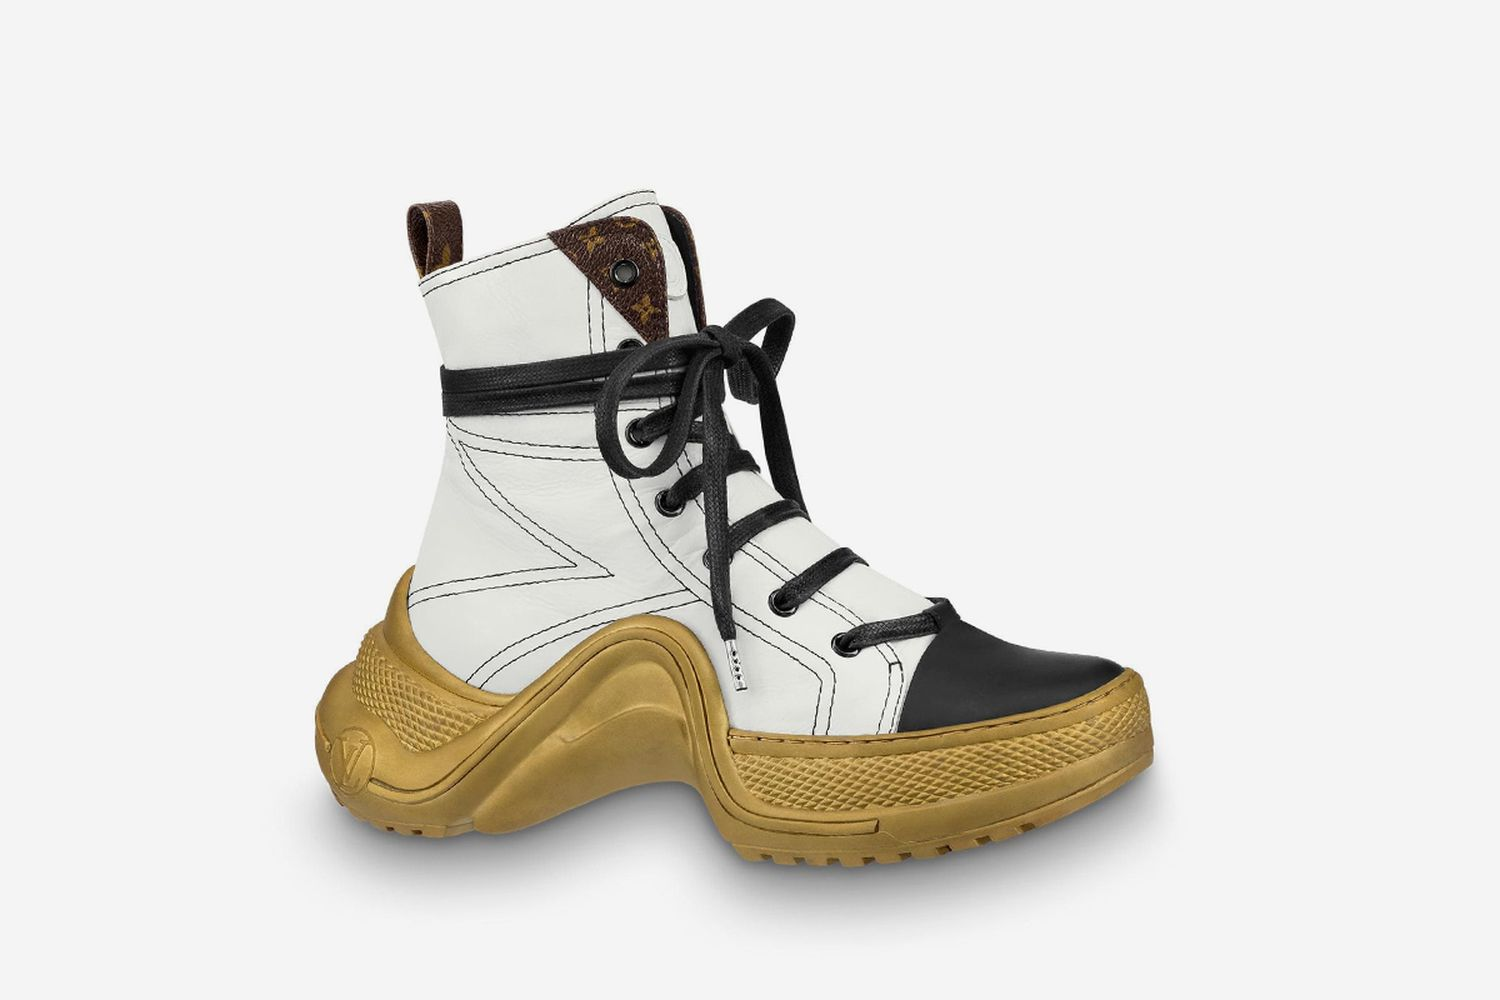 Archlight Sneaker Boot